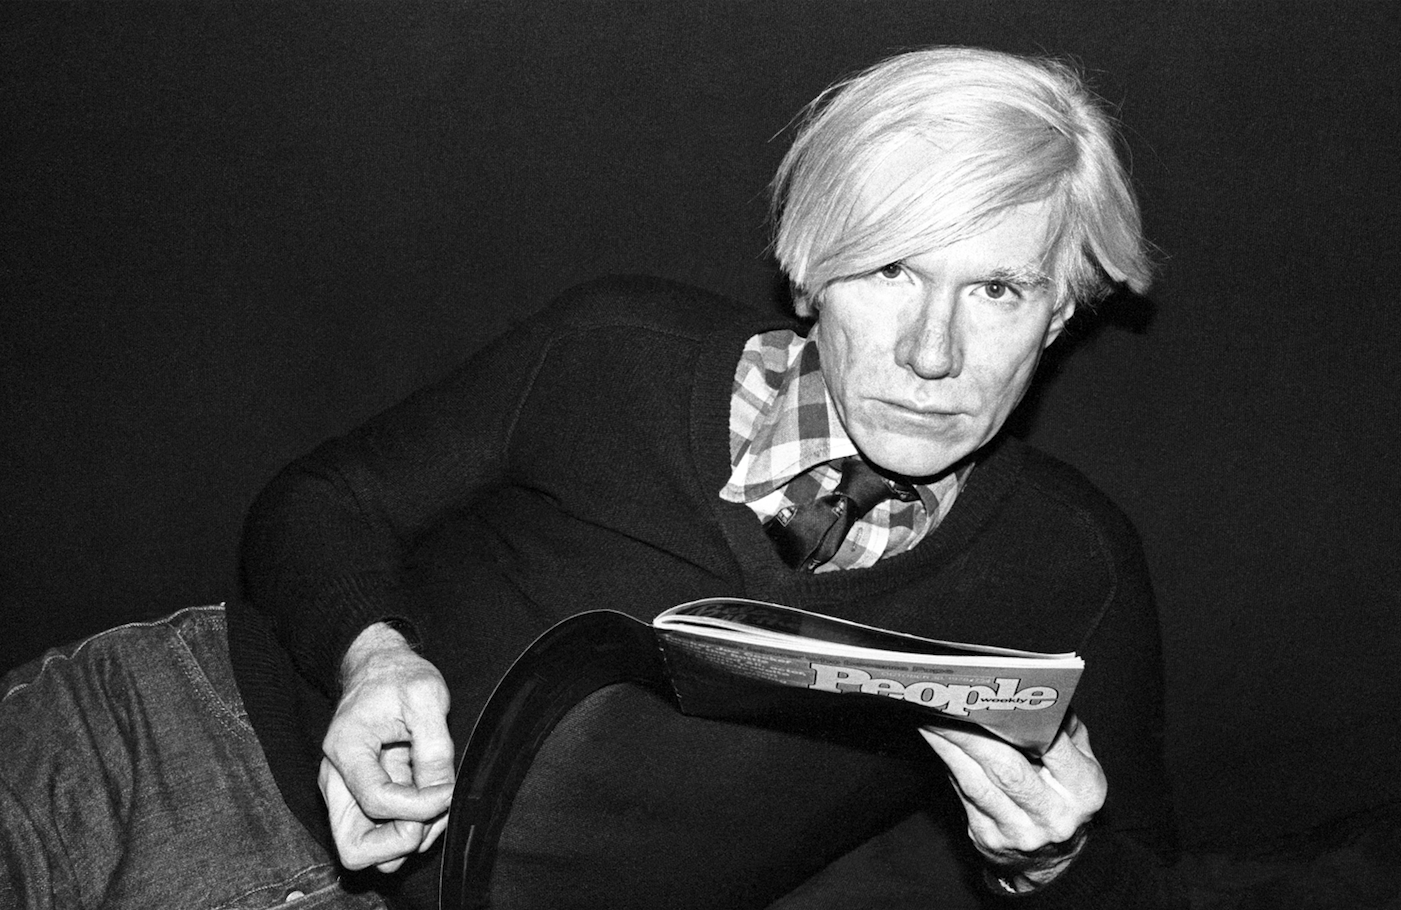 Andy Warhol in 1978